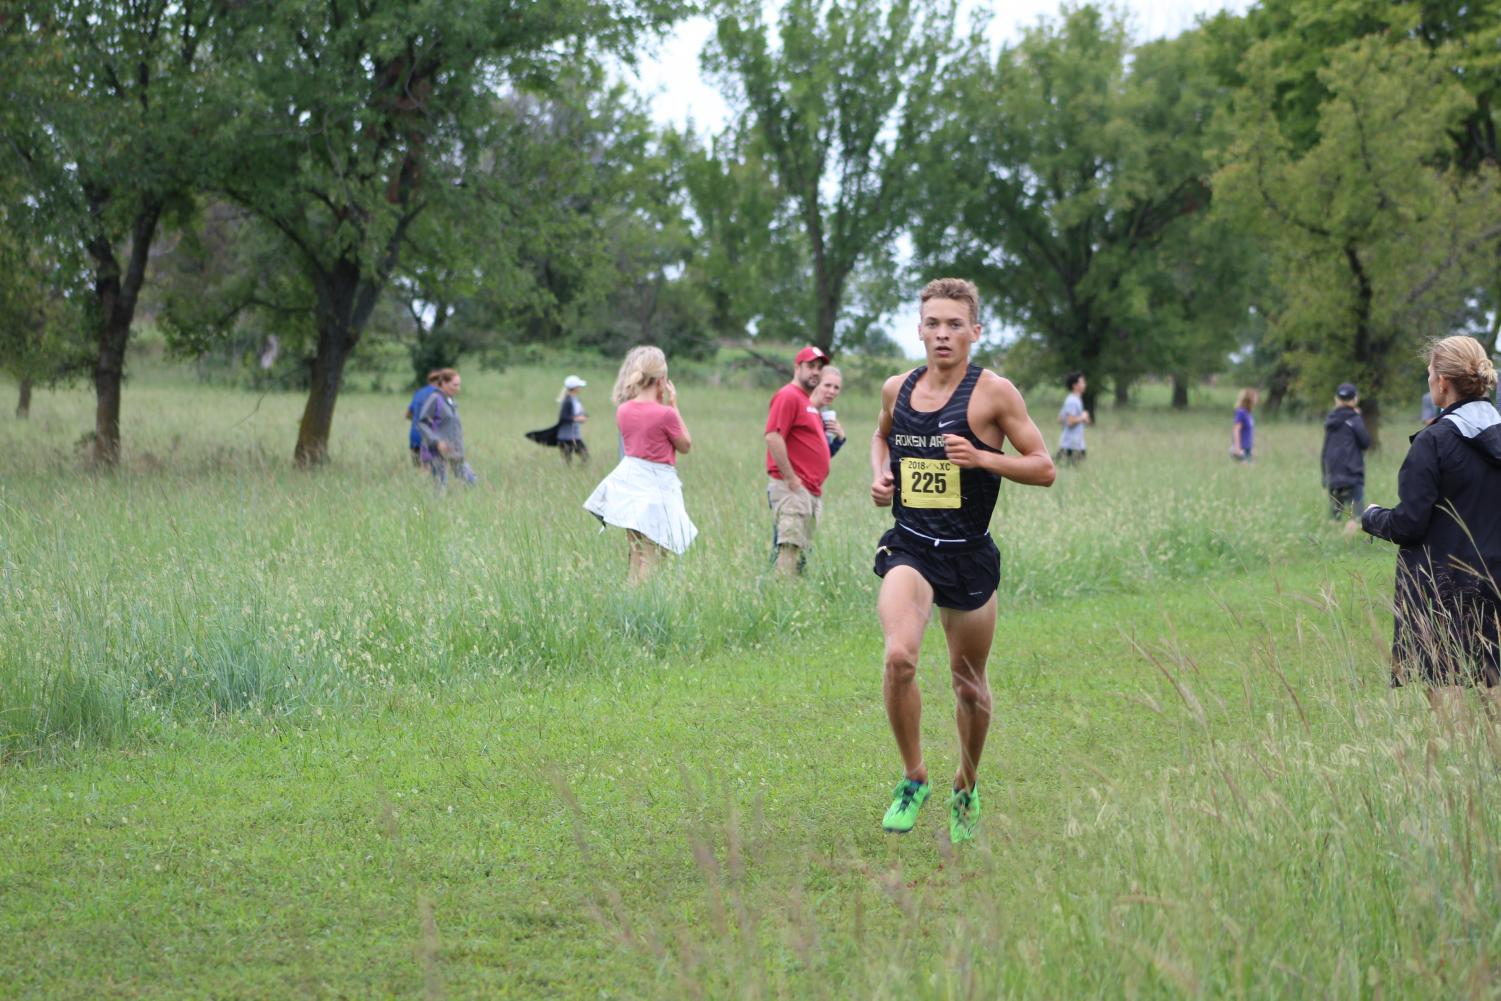 Blake McConkay runs in a meet at Oneta Ridge.